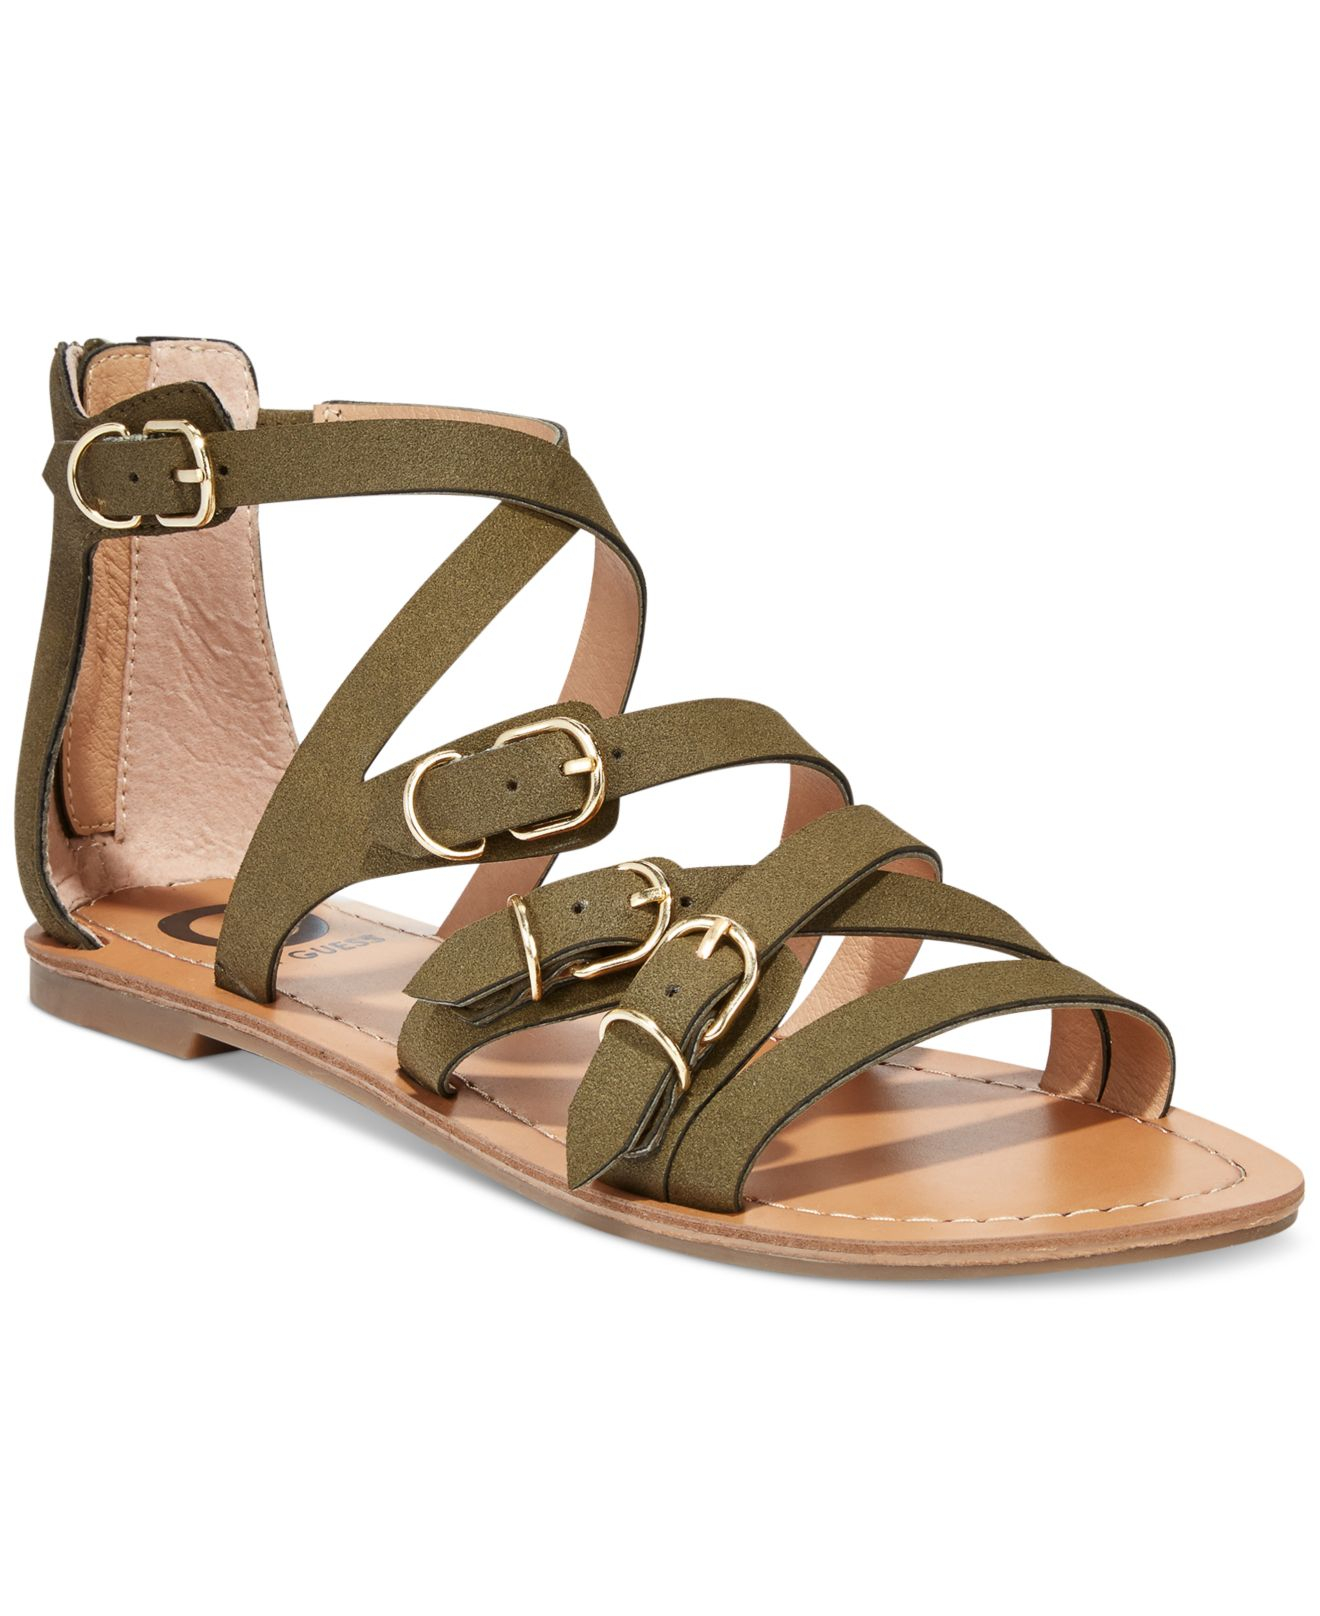 6b73640f698b Lyst - G by Guess Women S Harris Strappy Flat Sandals in Natural